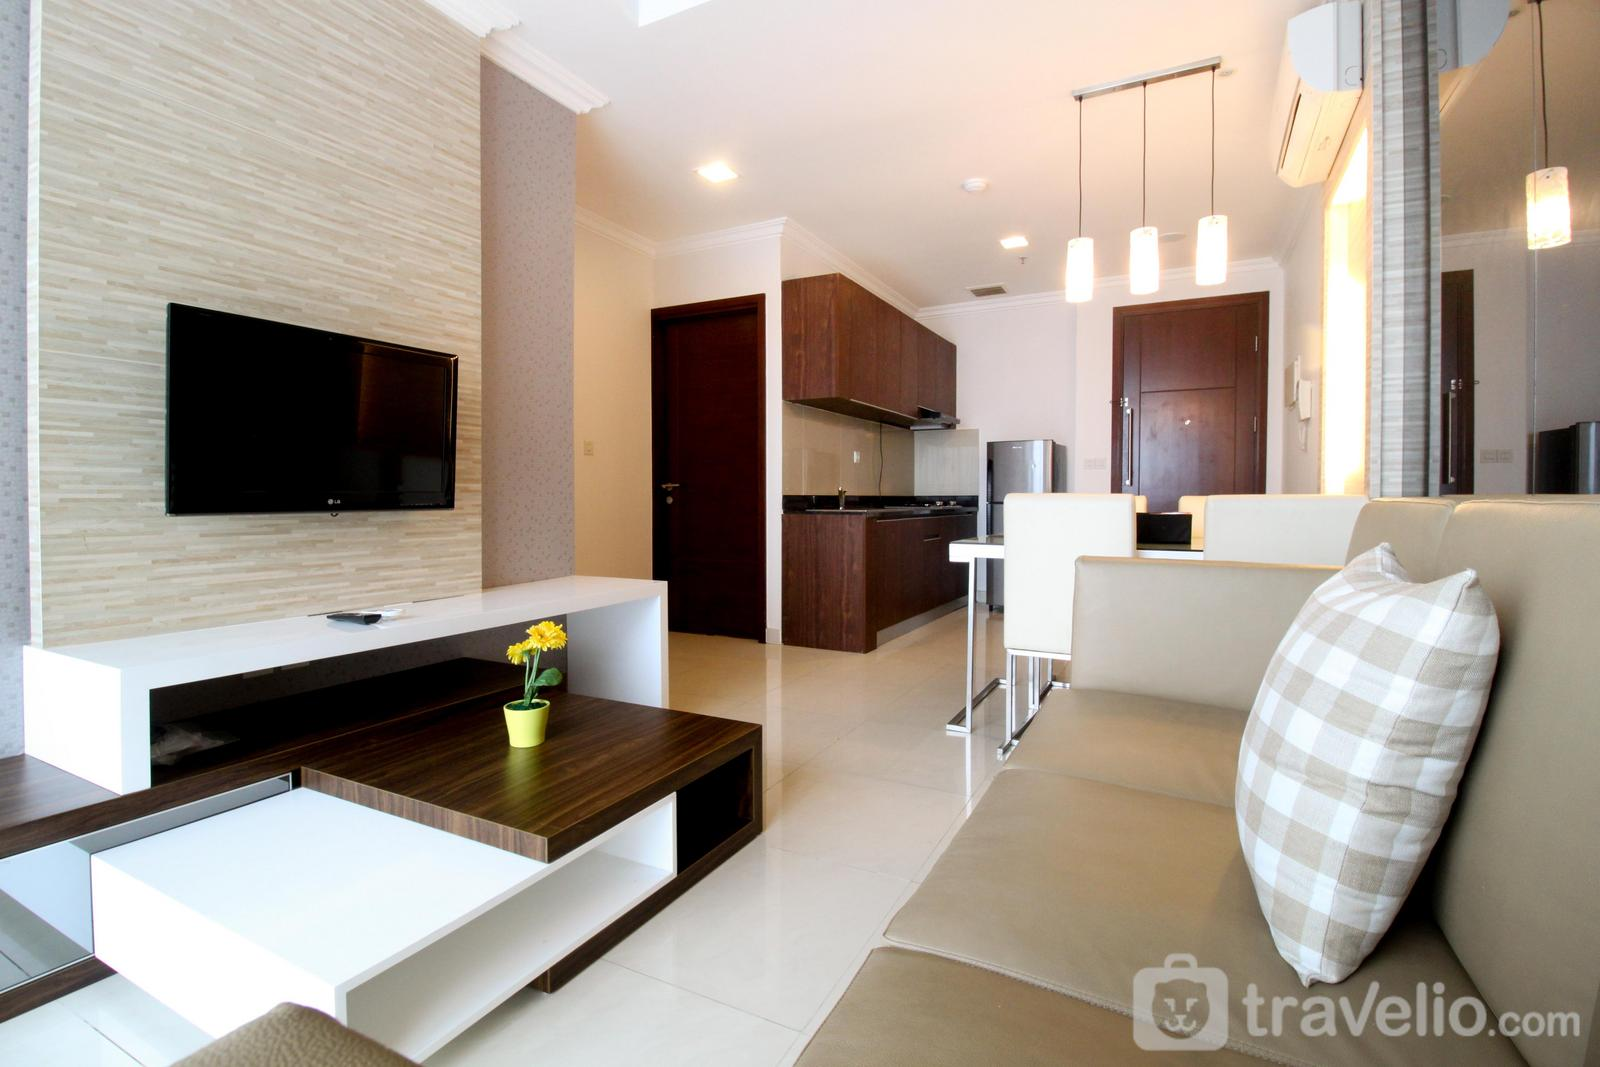 Denpasar Residence Kuningan - 2BR Denpasar Residence Apartment with Direct Access to Mall Kuningan City By Travelio